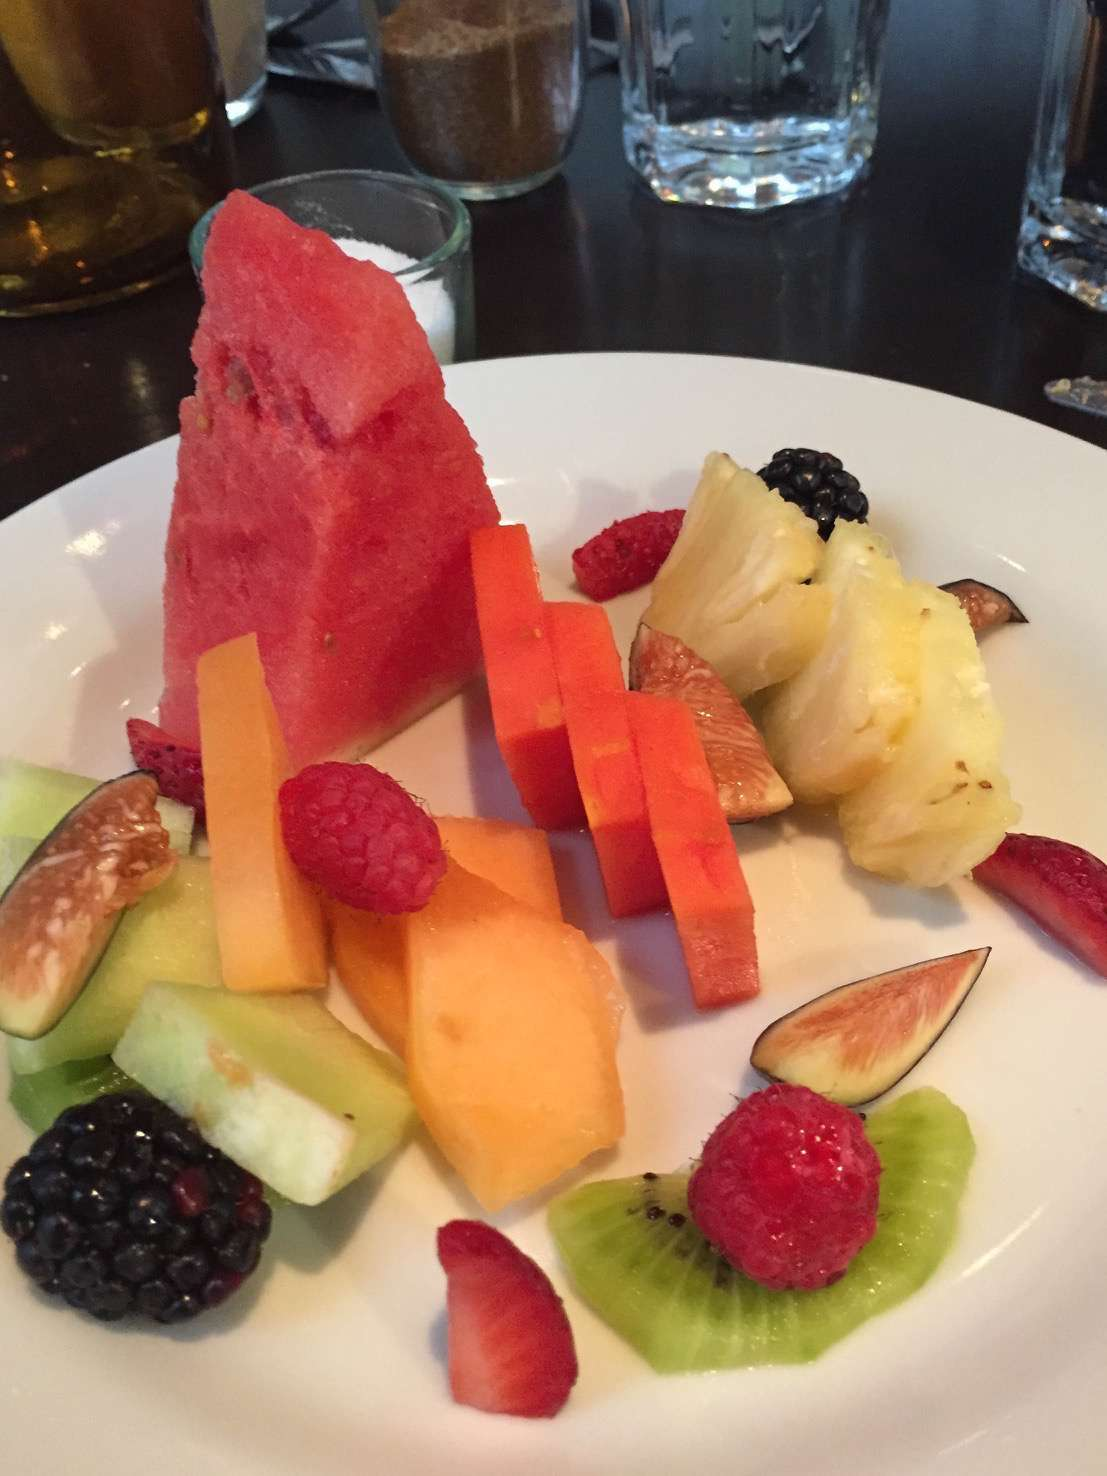 The abundance of a variety of fresh fruits is giving chefs in Mexico City new and creative options.